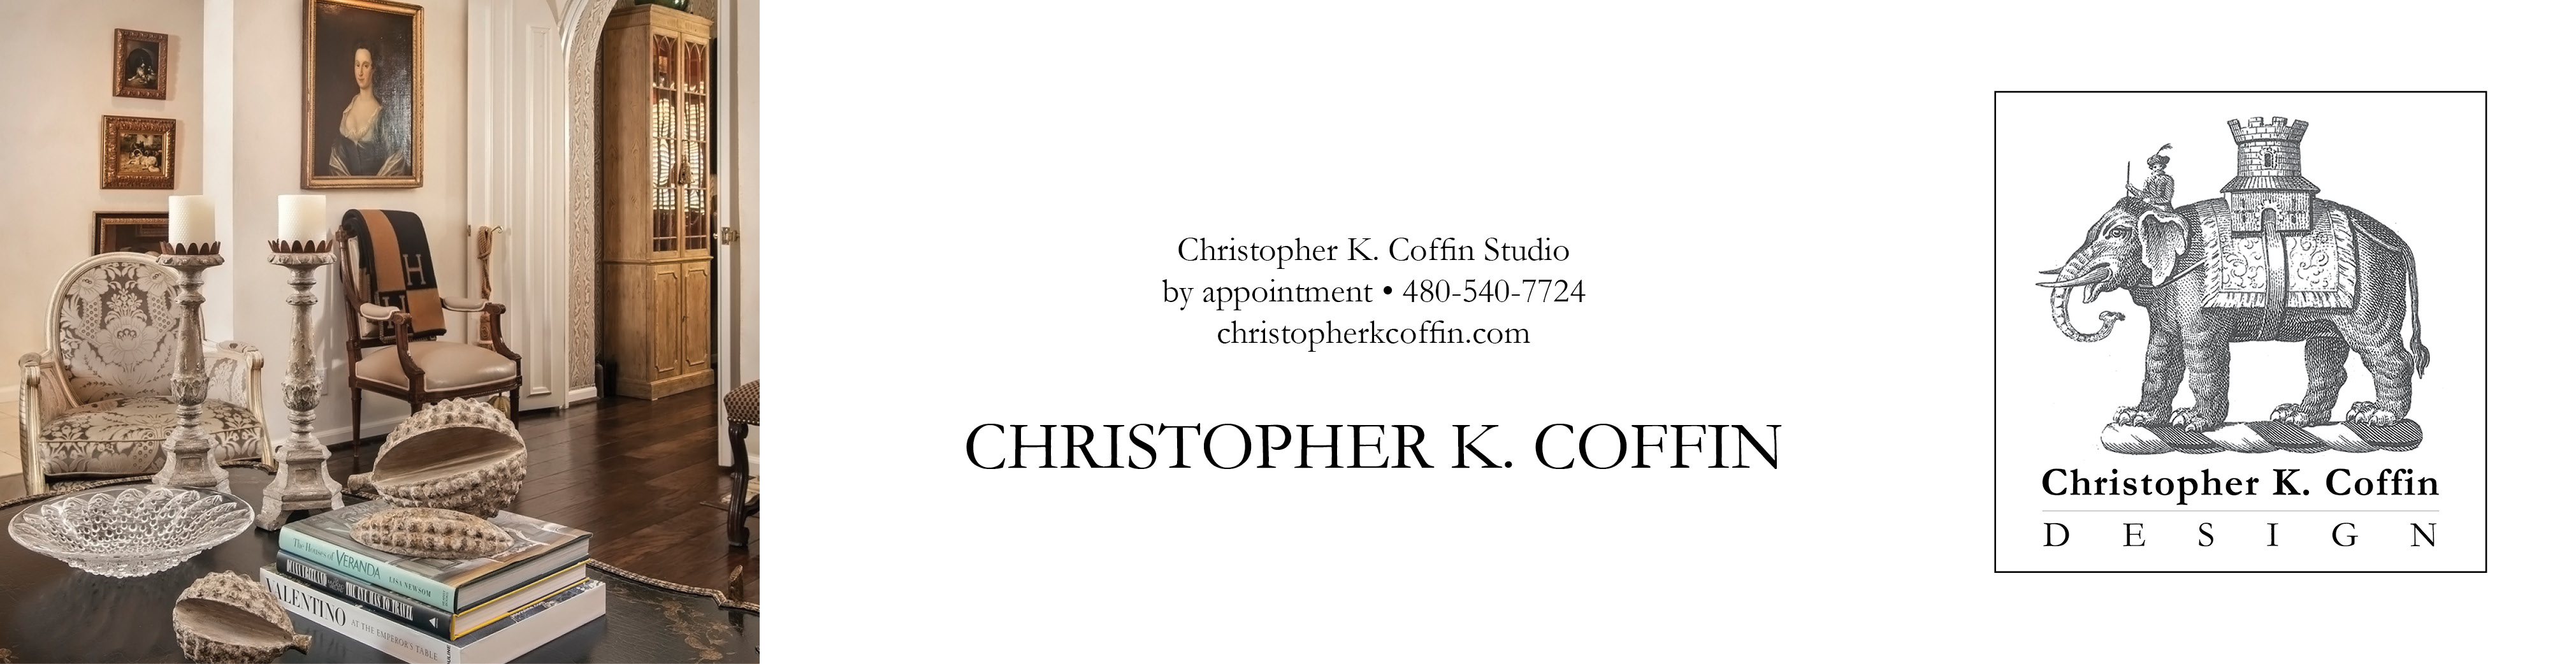 Visit Christopher Coffin billboard